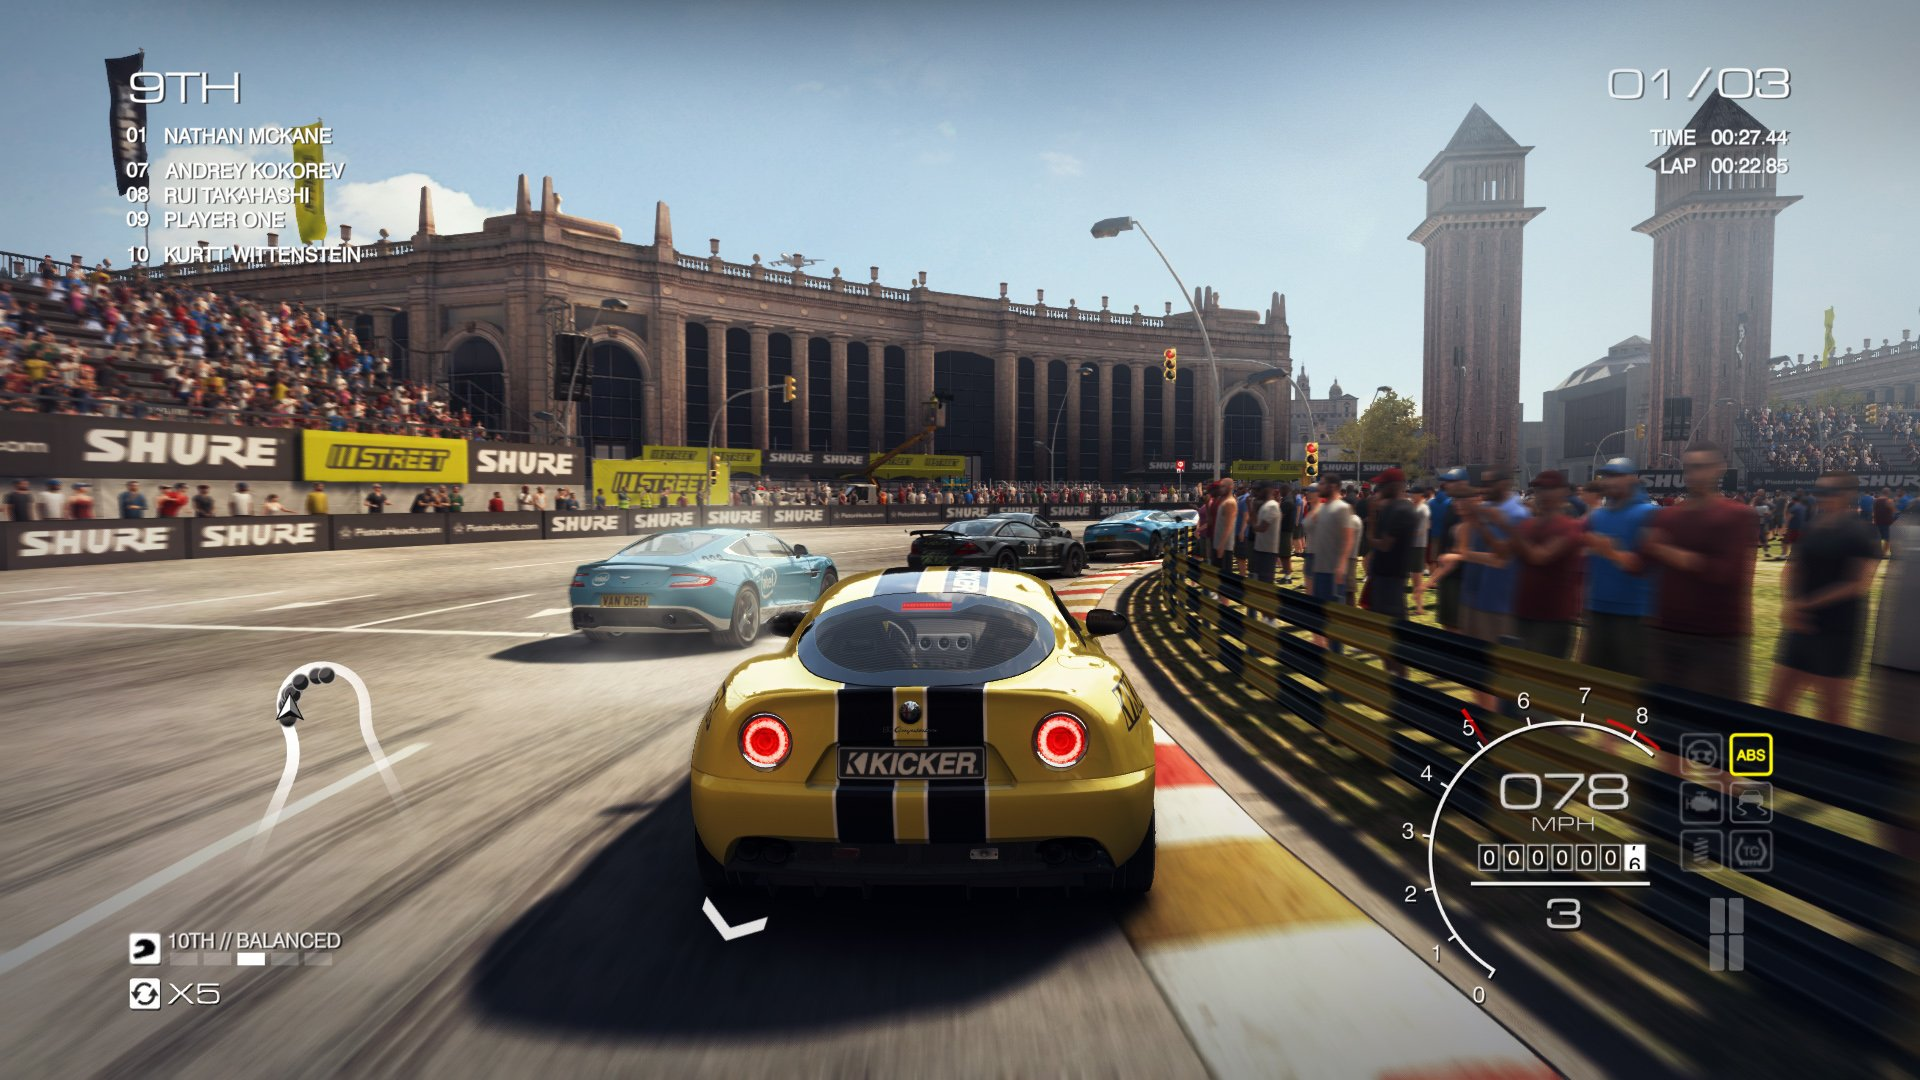 Grid 2 Game Wallpaper High Resolution Pics: GRID AUTOSPORT Racing Race Auto Game Action Open-wheel